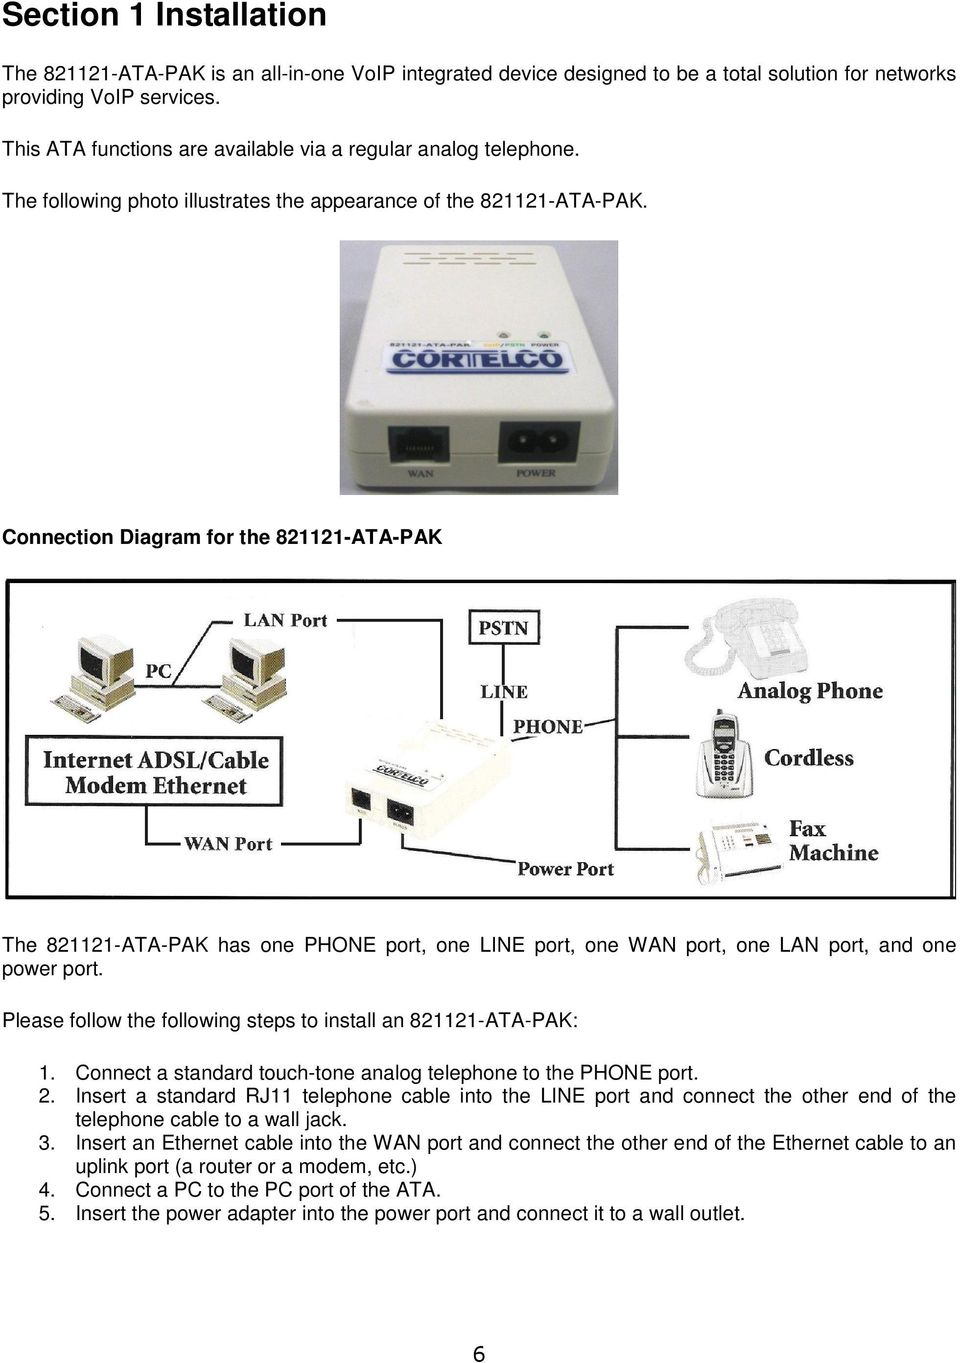 User Manual Ata Pak Pdf Analog Phone Wiring Diagram Connection For The 821121 Has